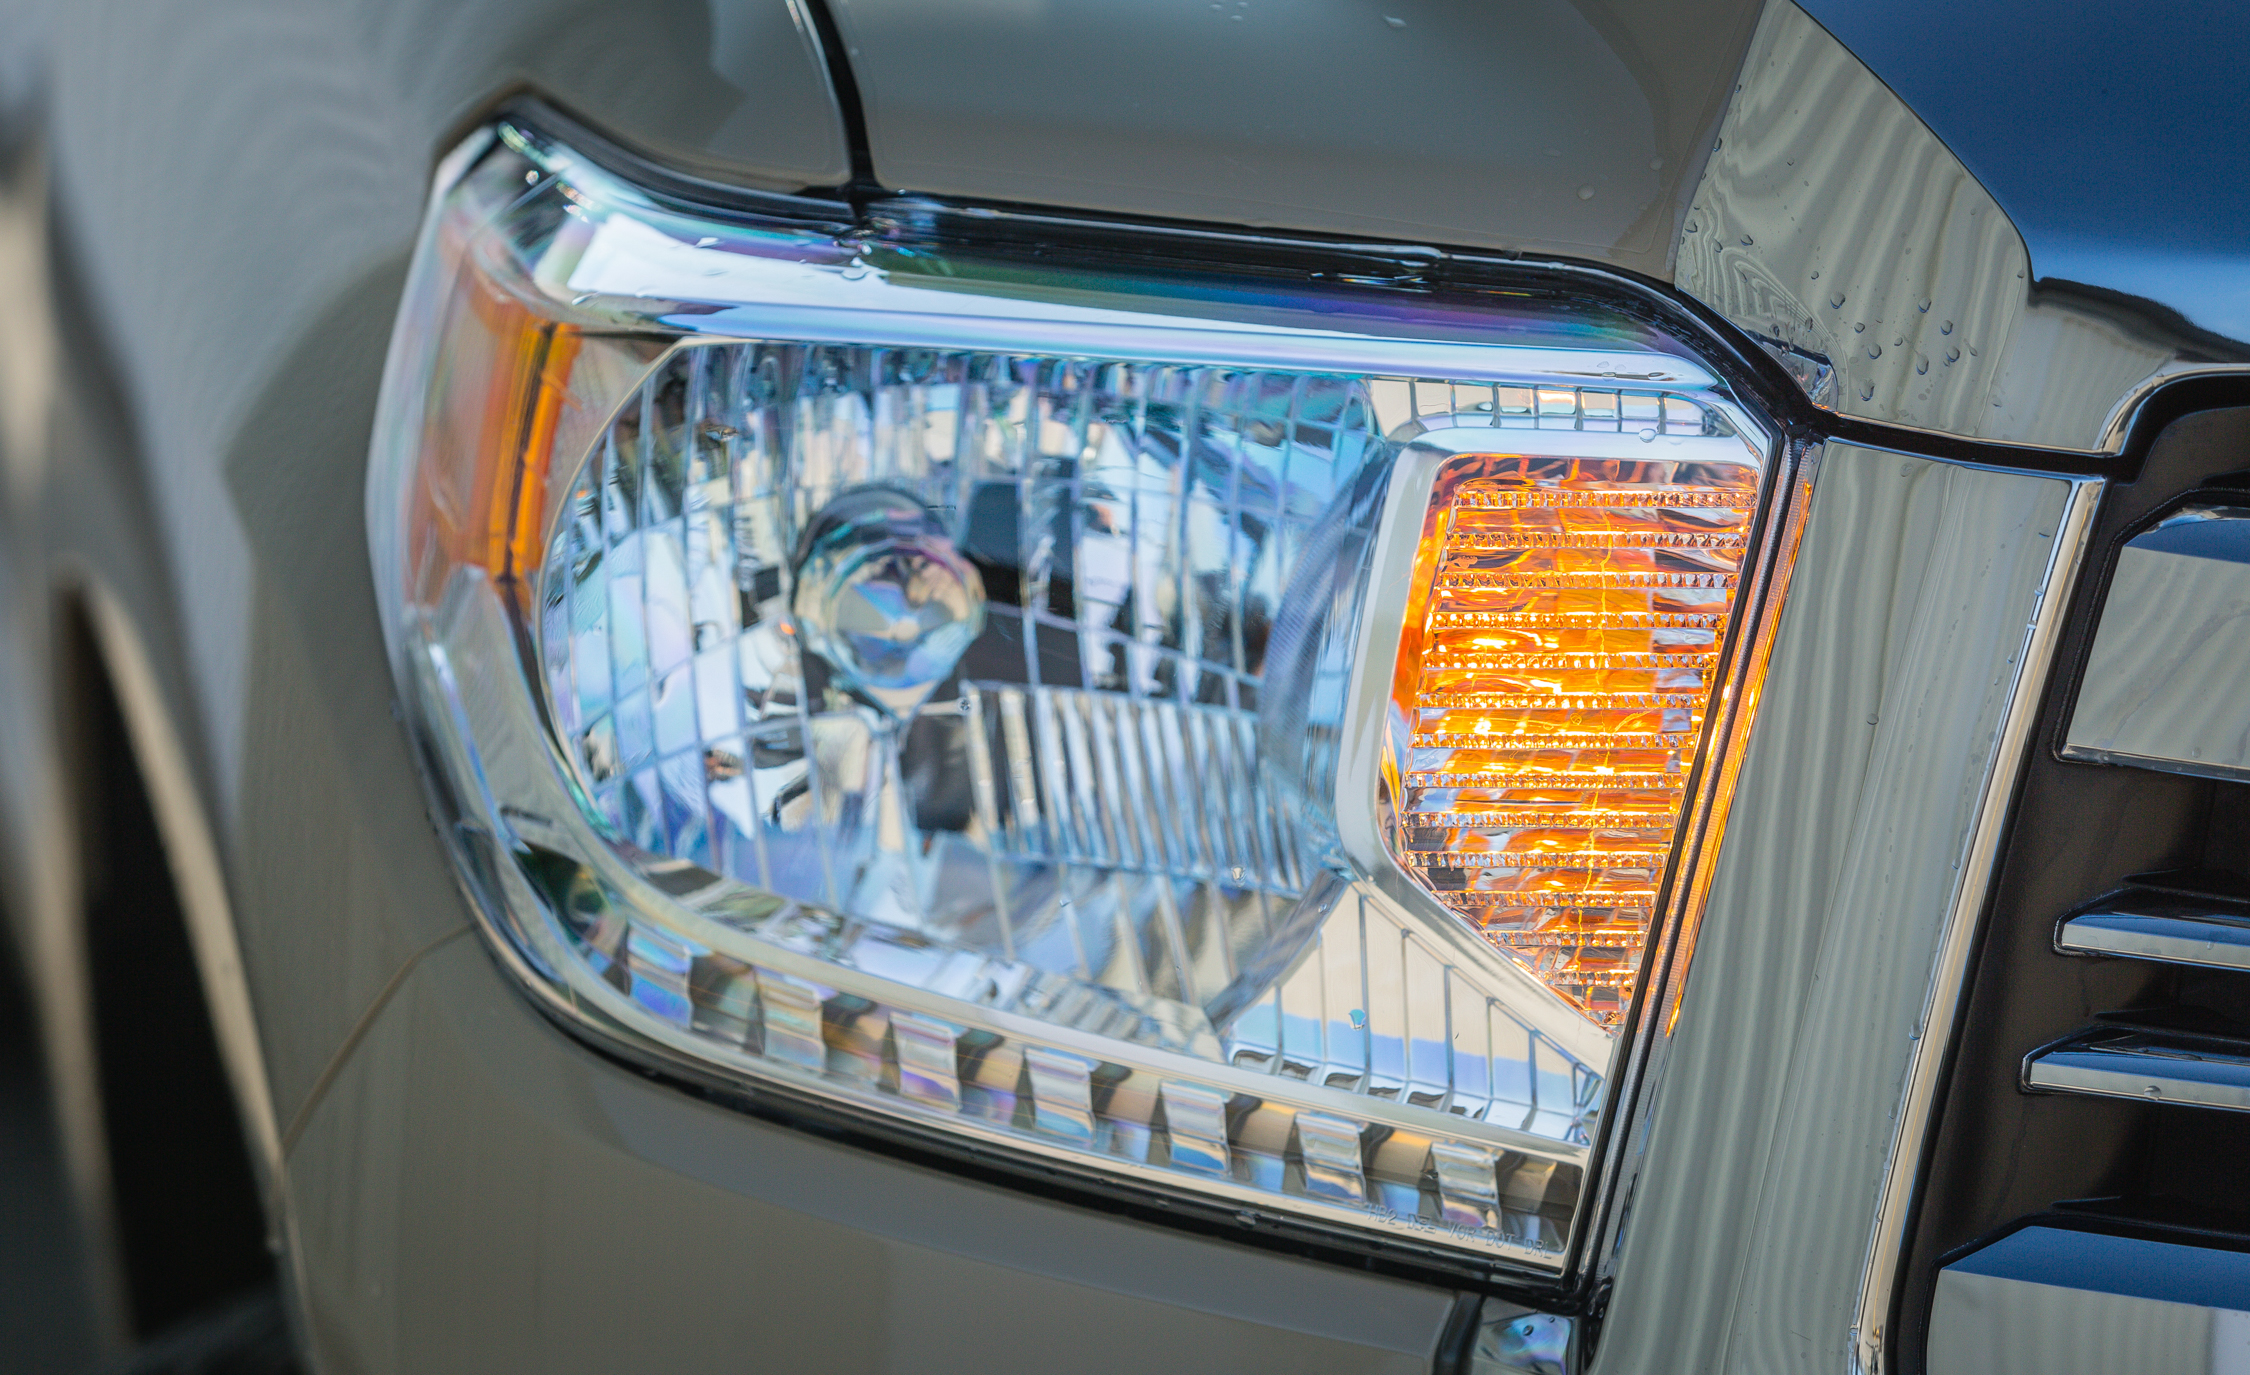 2017 Toyota Tundra Exterior View Headlight (View 18 of 24)